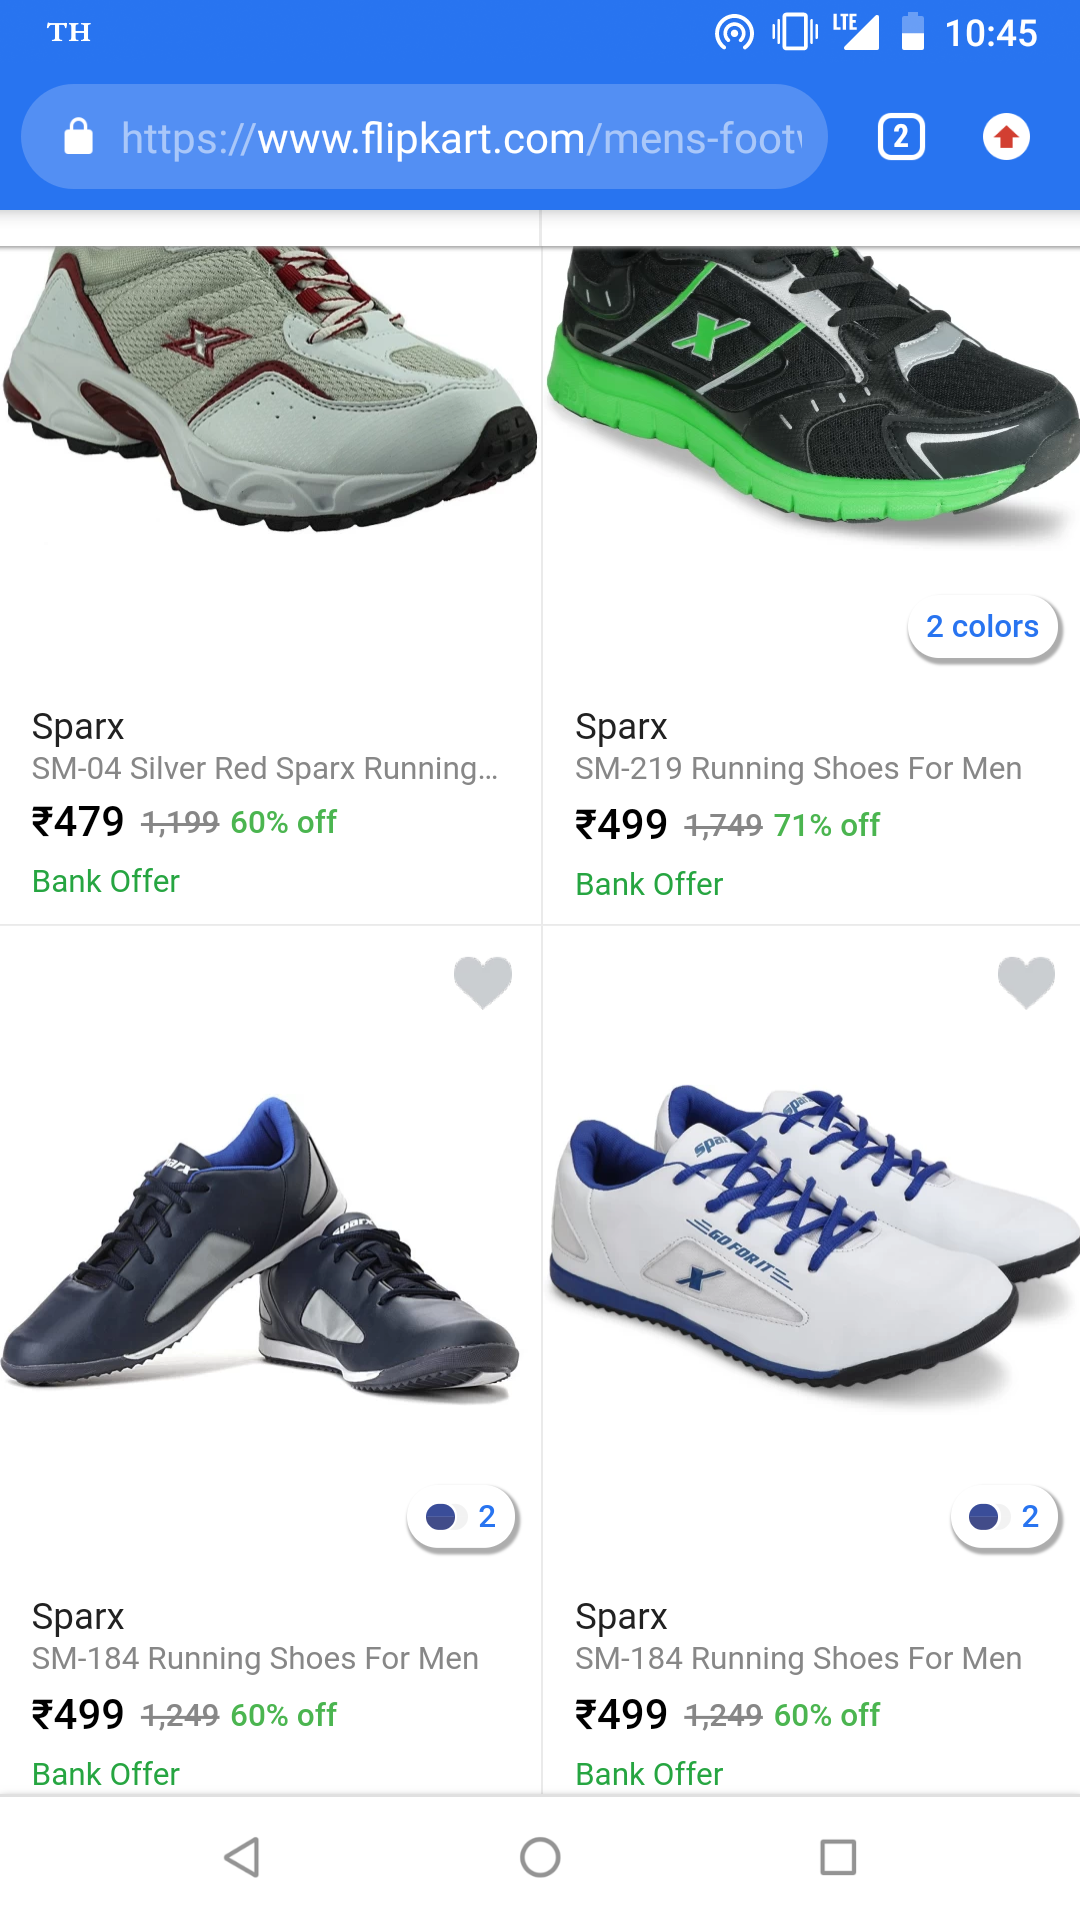 Sparx shoes Flat 60% off from 479 Rs